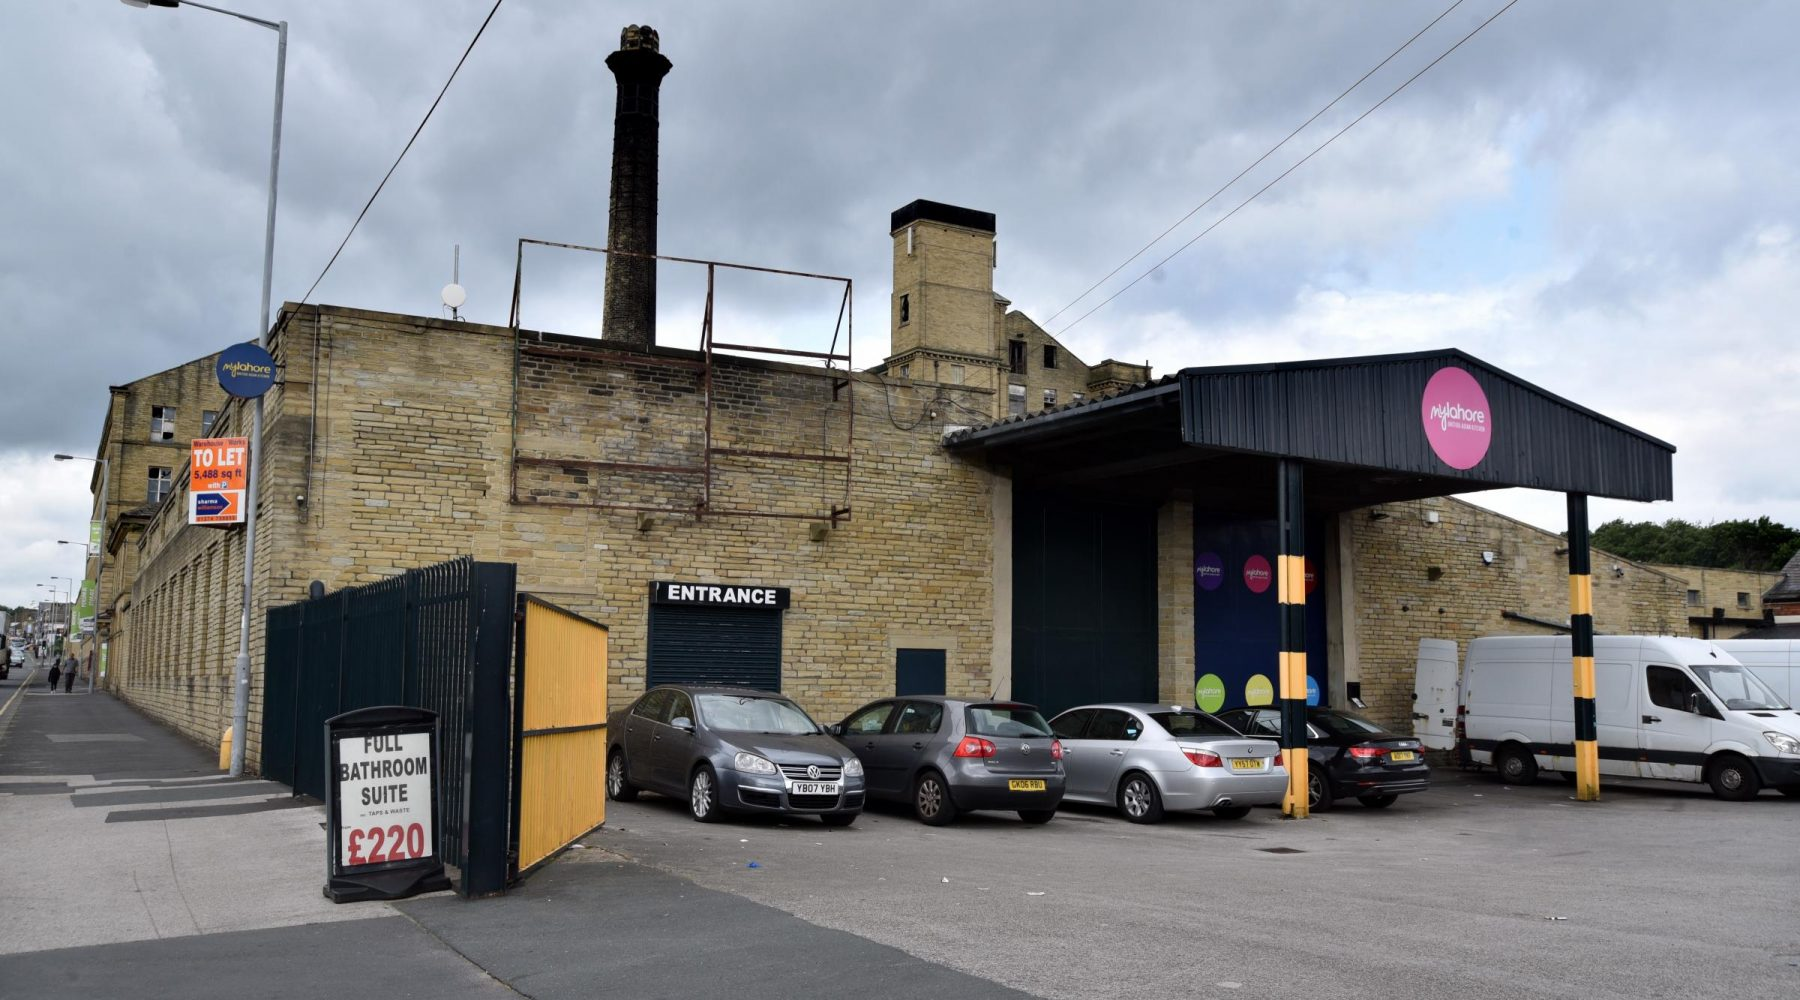 Toolstation signage for mill building approved